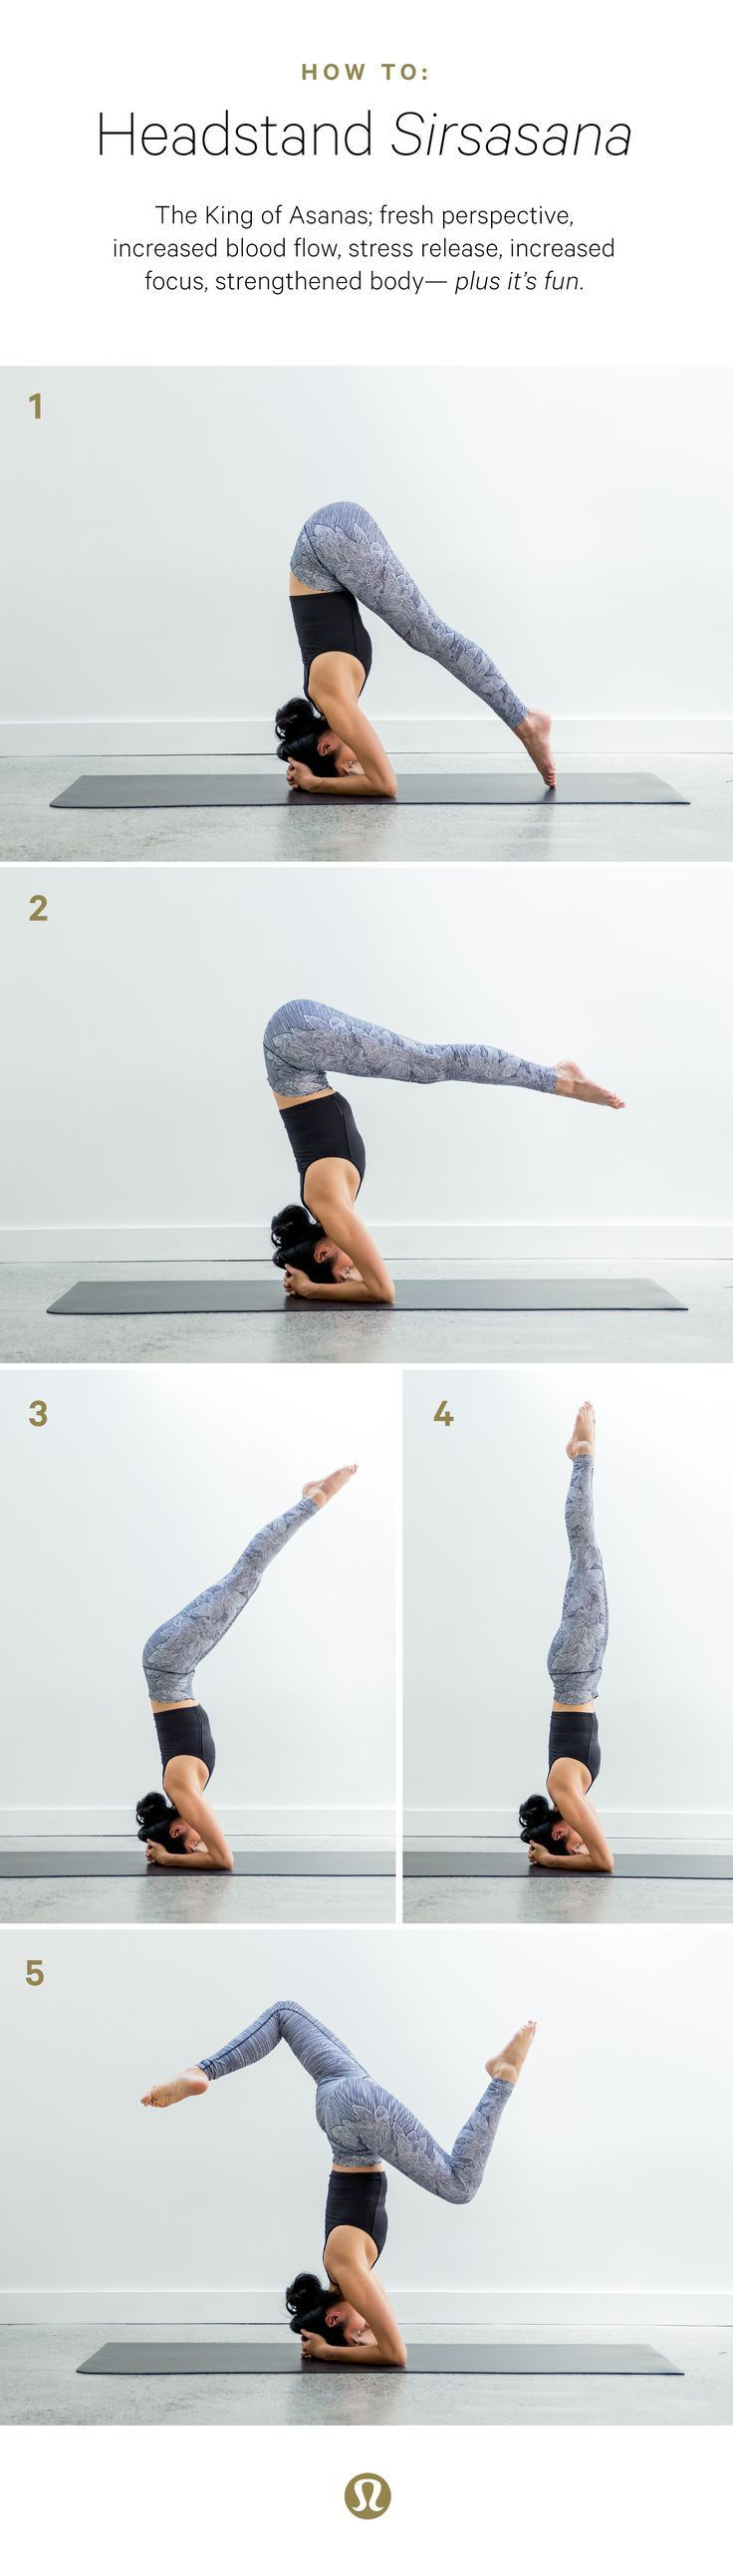 How to headstand (sirsasana). Step one: head to a local yoga class to get in person instruction, then play at home using a wall. Start with your elbows one forearms distance length away from one another. Walk your feet in to get your hips as high as possi